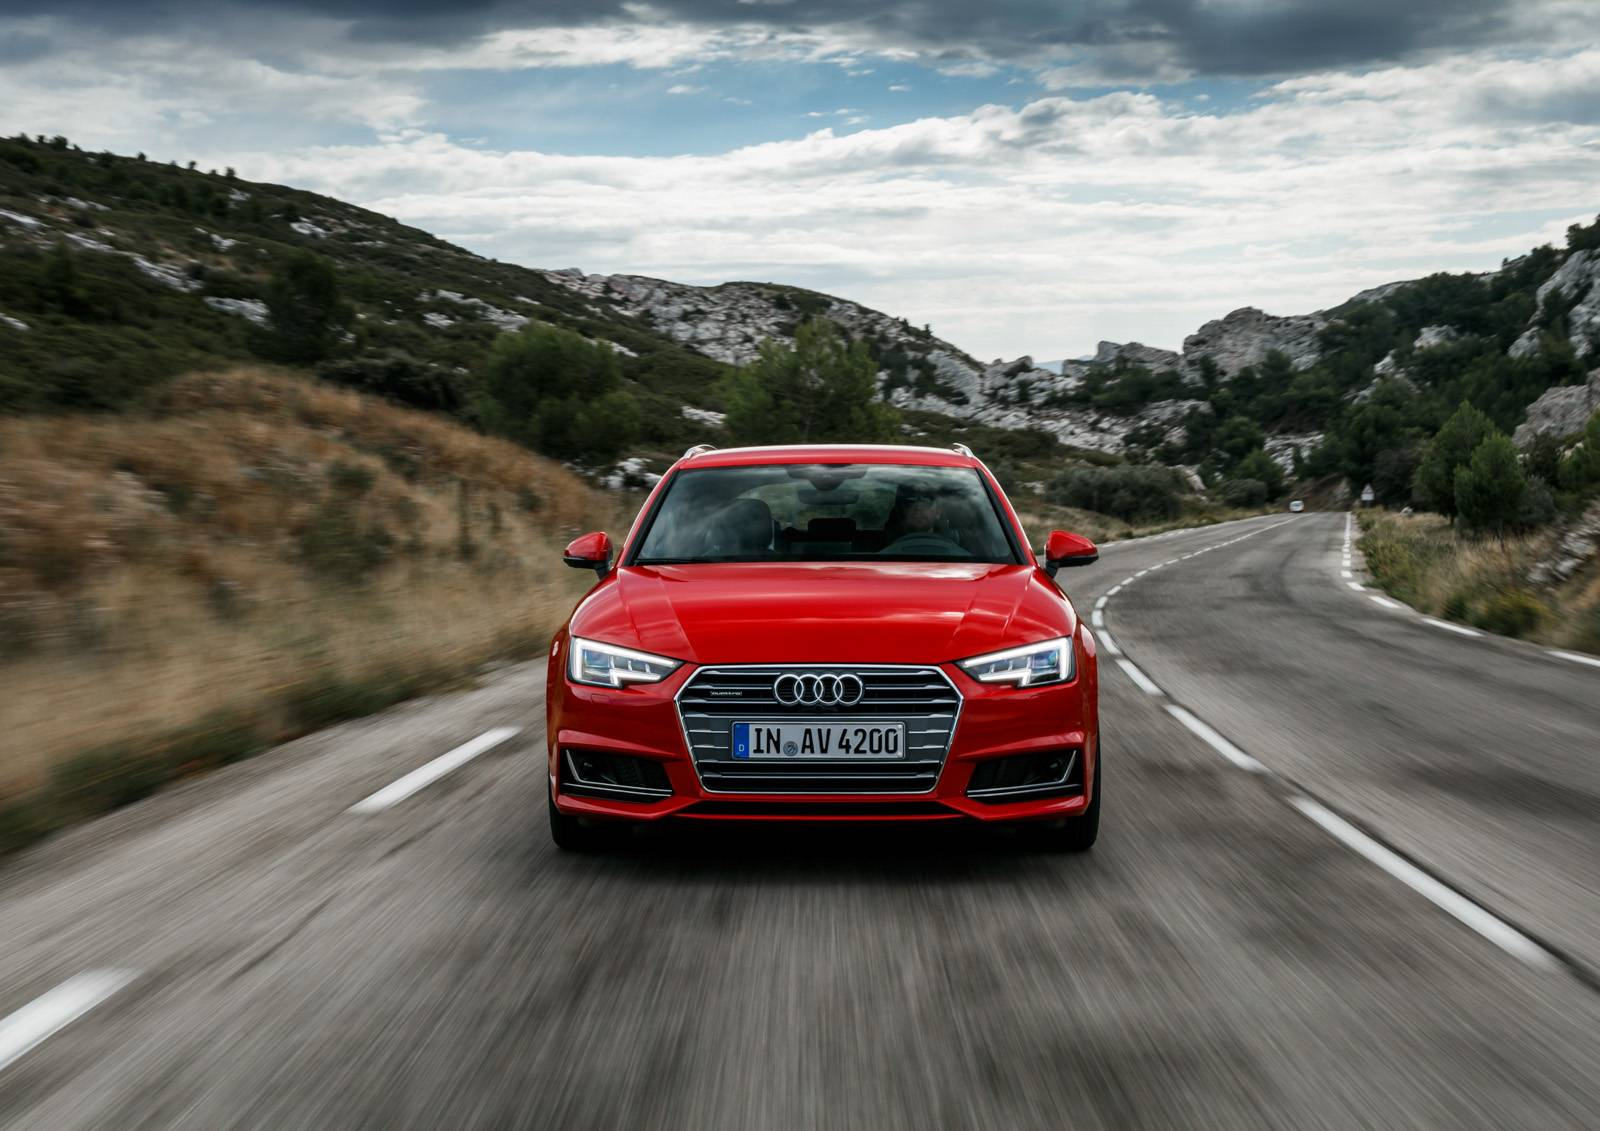 2016 Audi A4 Avant Review 30 Photos Gtspirit